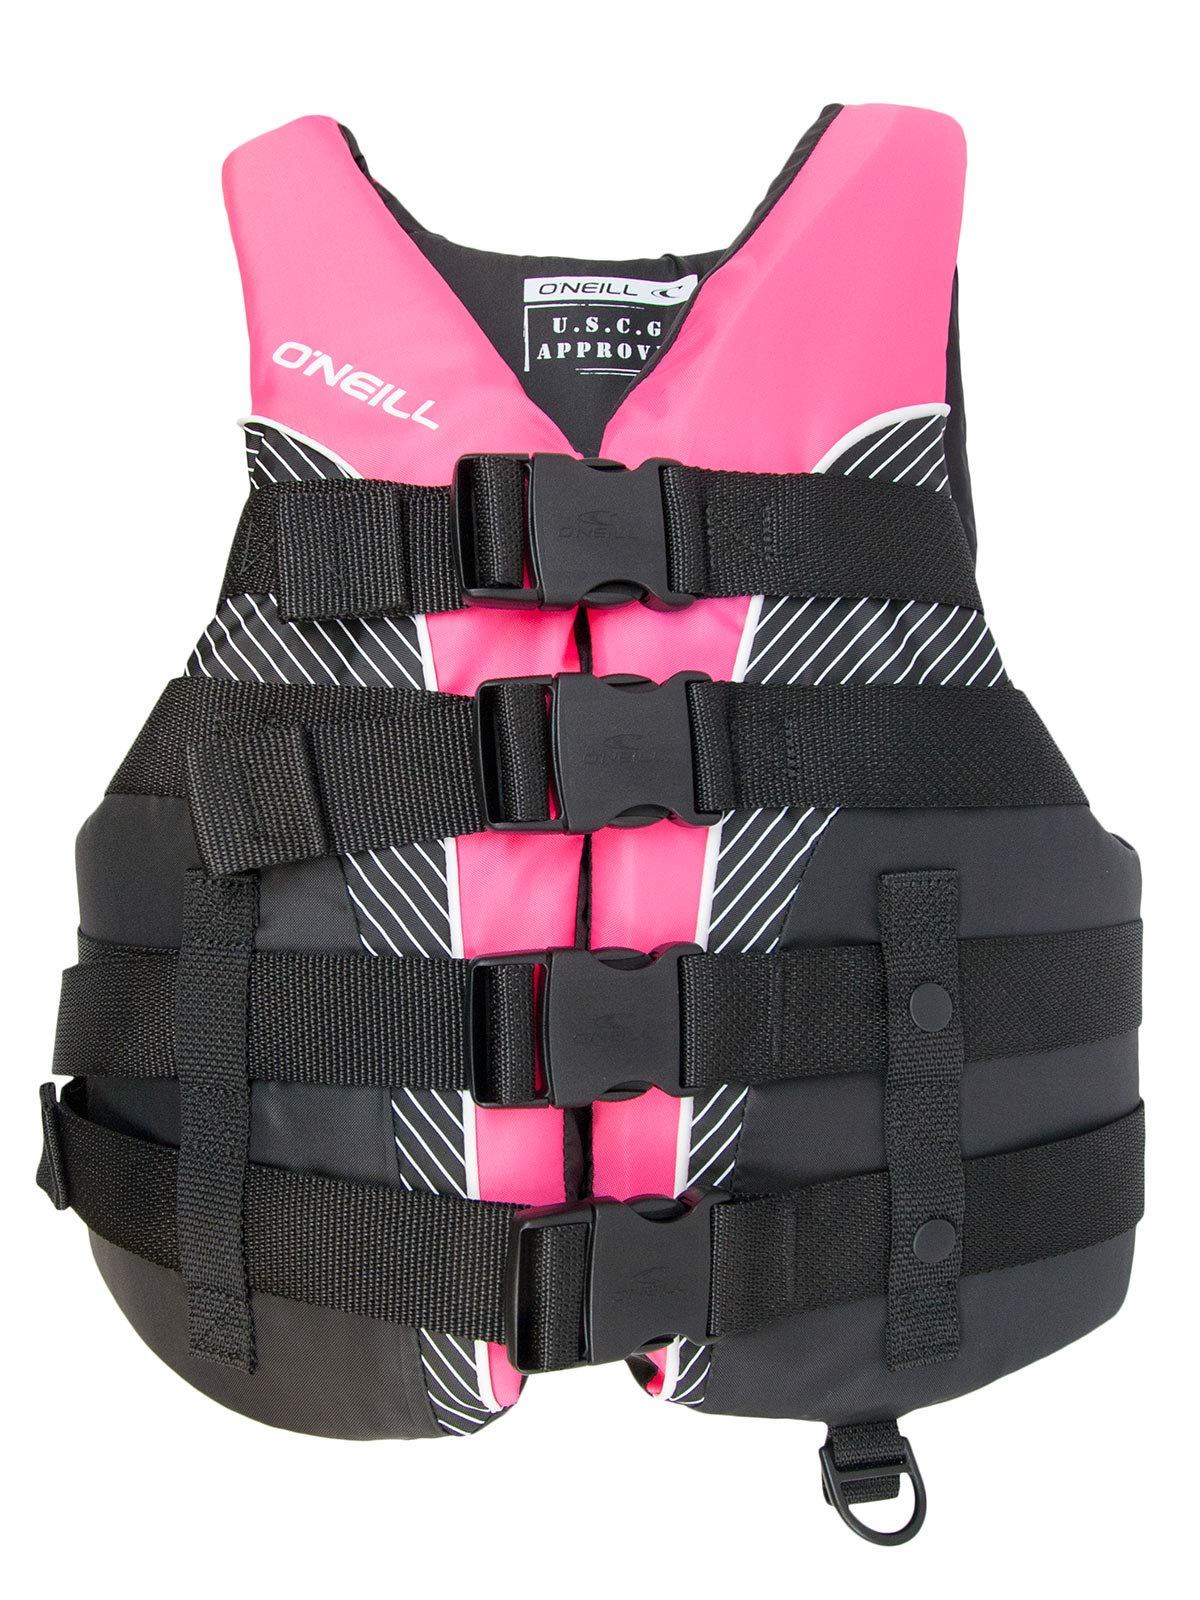 O'Neill Womens Superlite USCG Life Vest L Black/Berry/Black by O'Neill Wetsuits